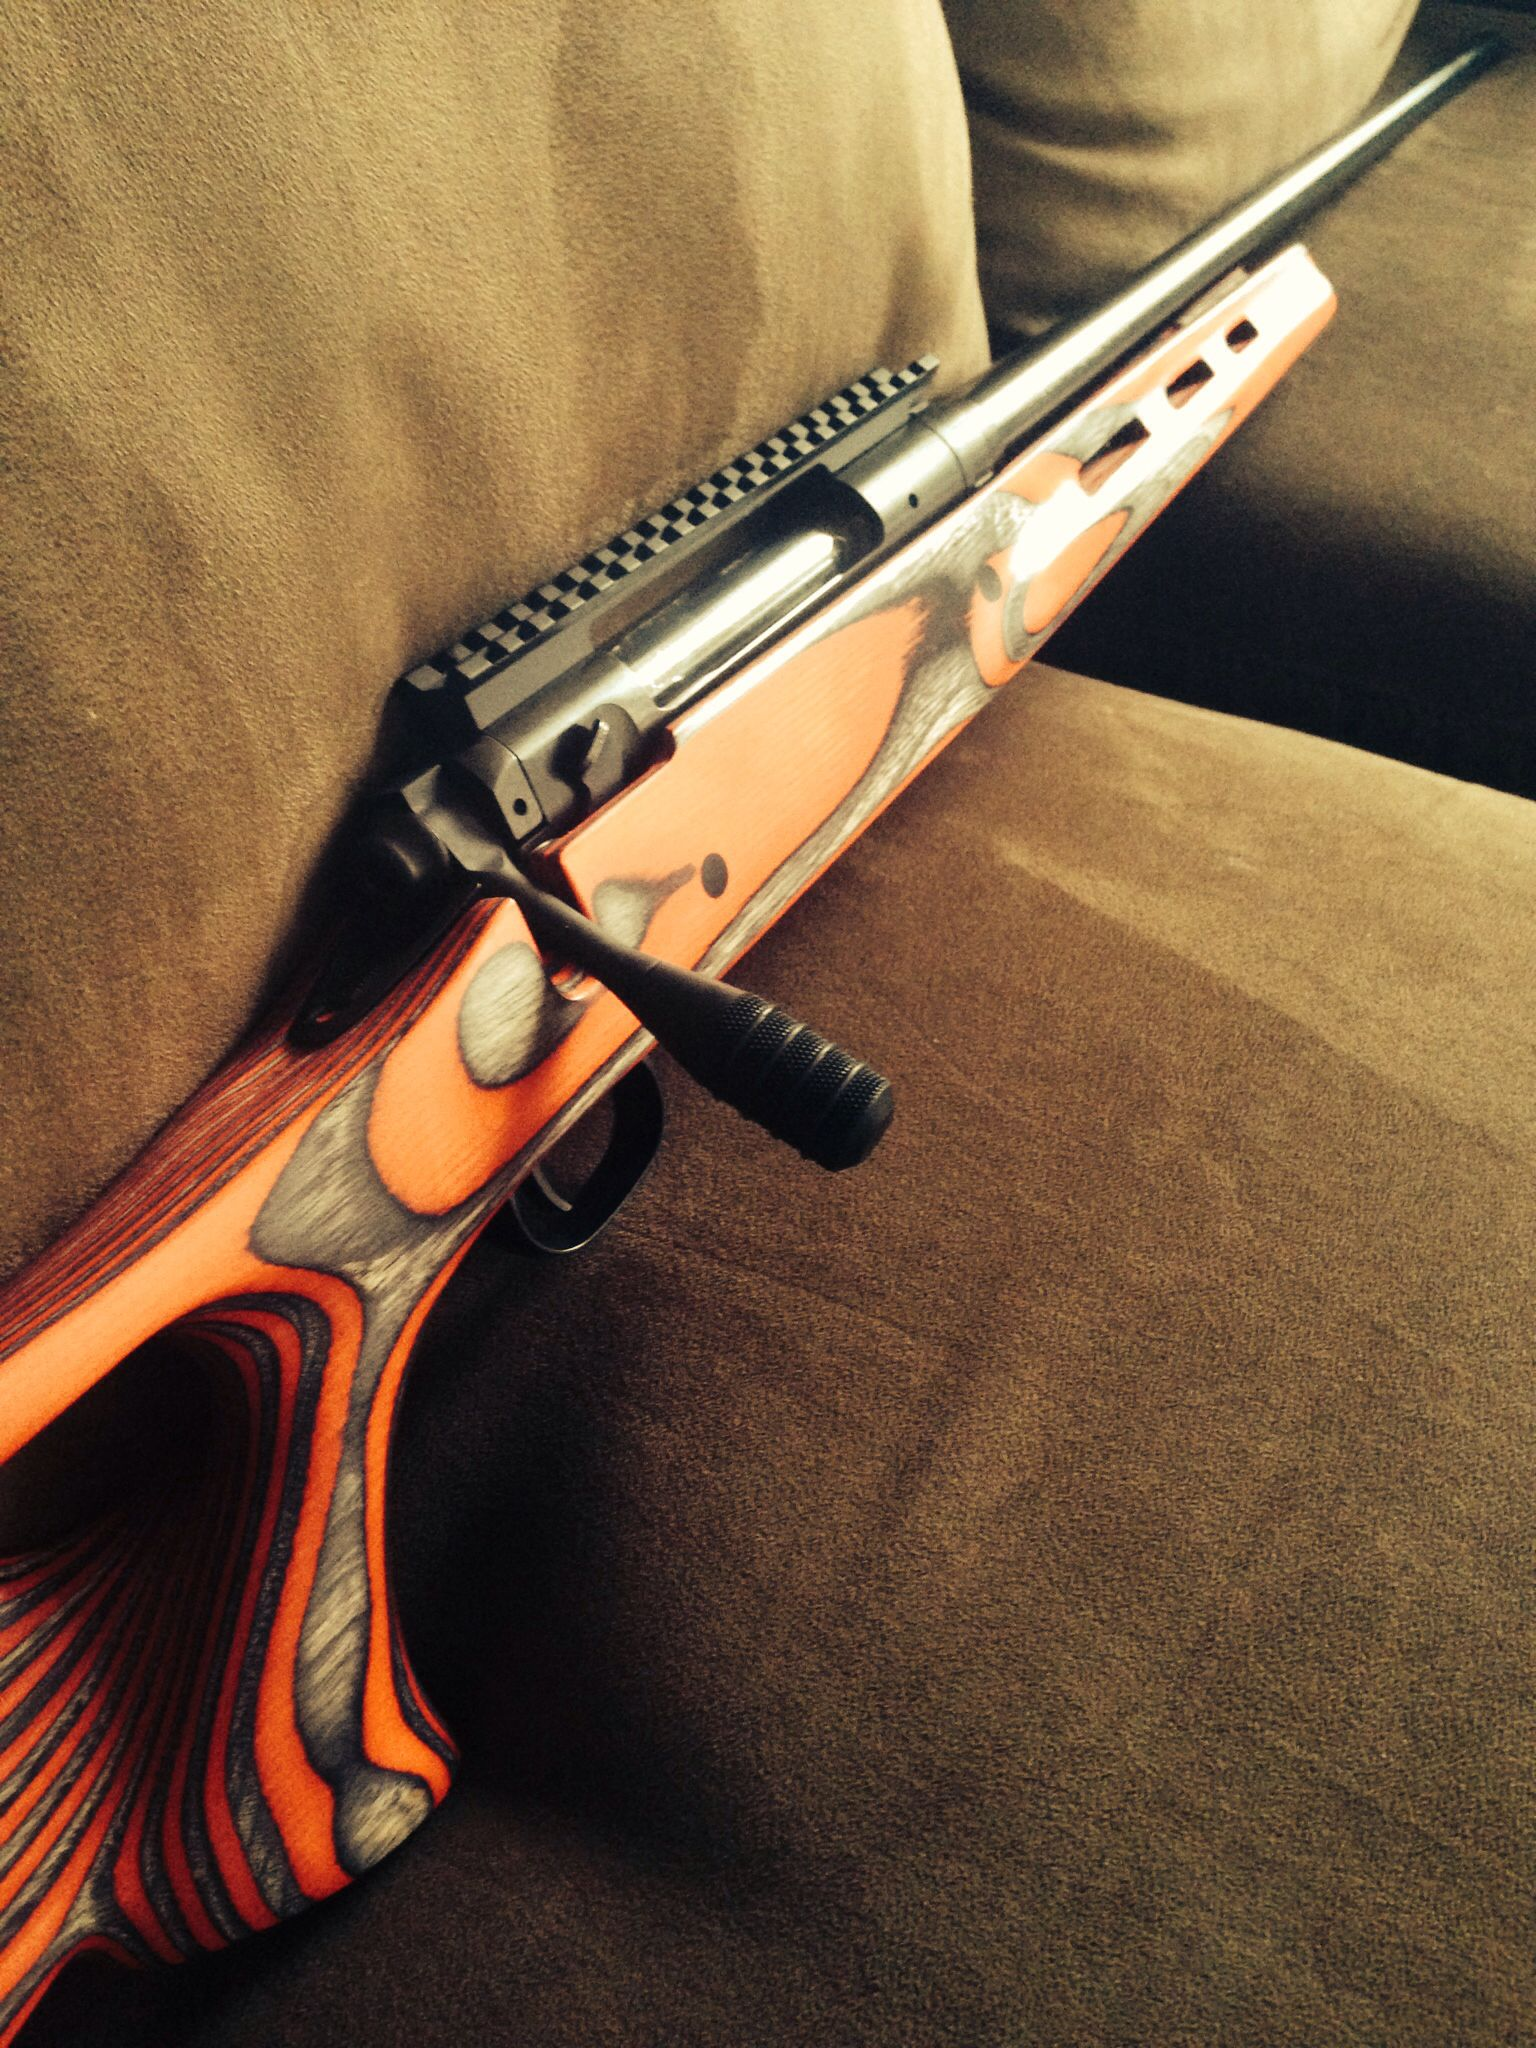 Savage Model 111  270 with a Boyd's applewood gun stock and